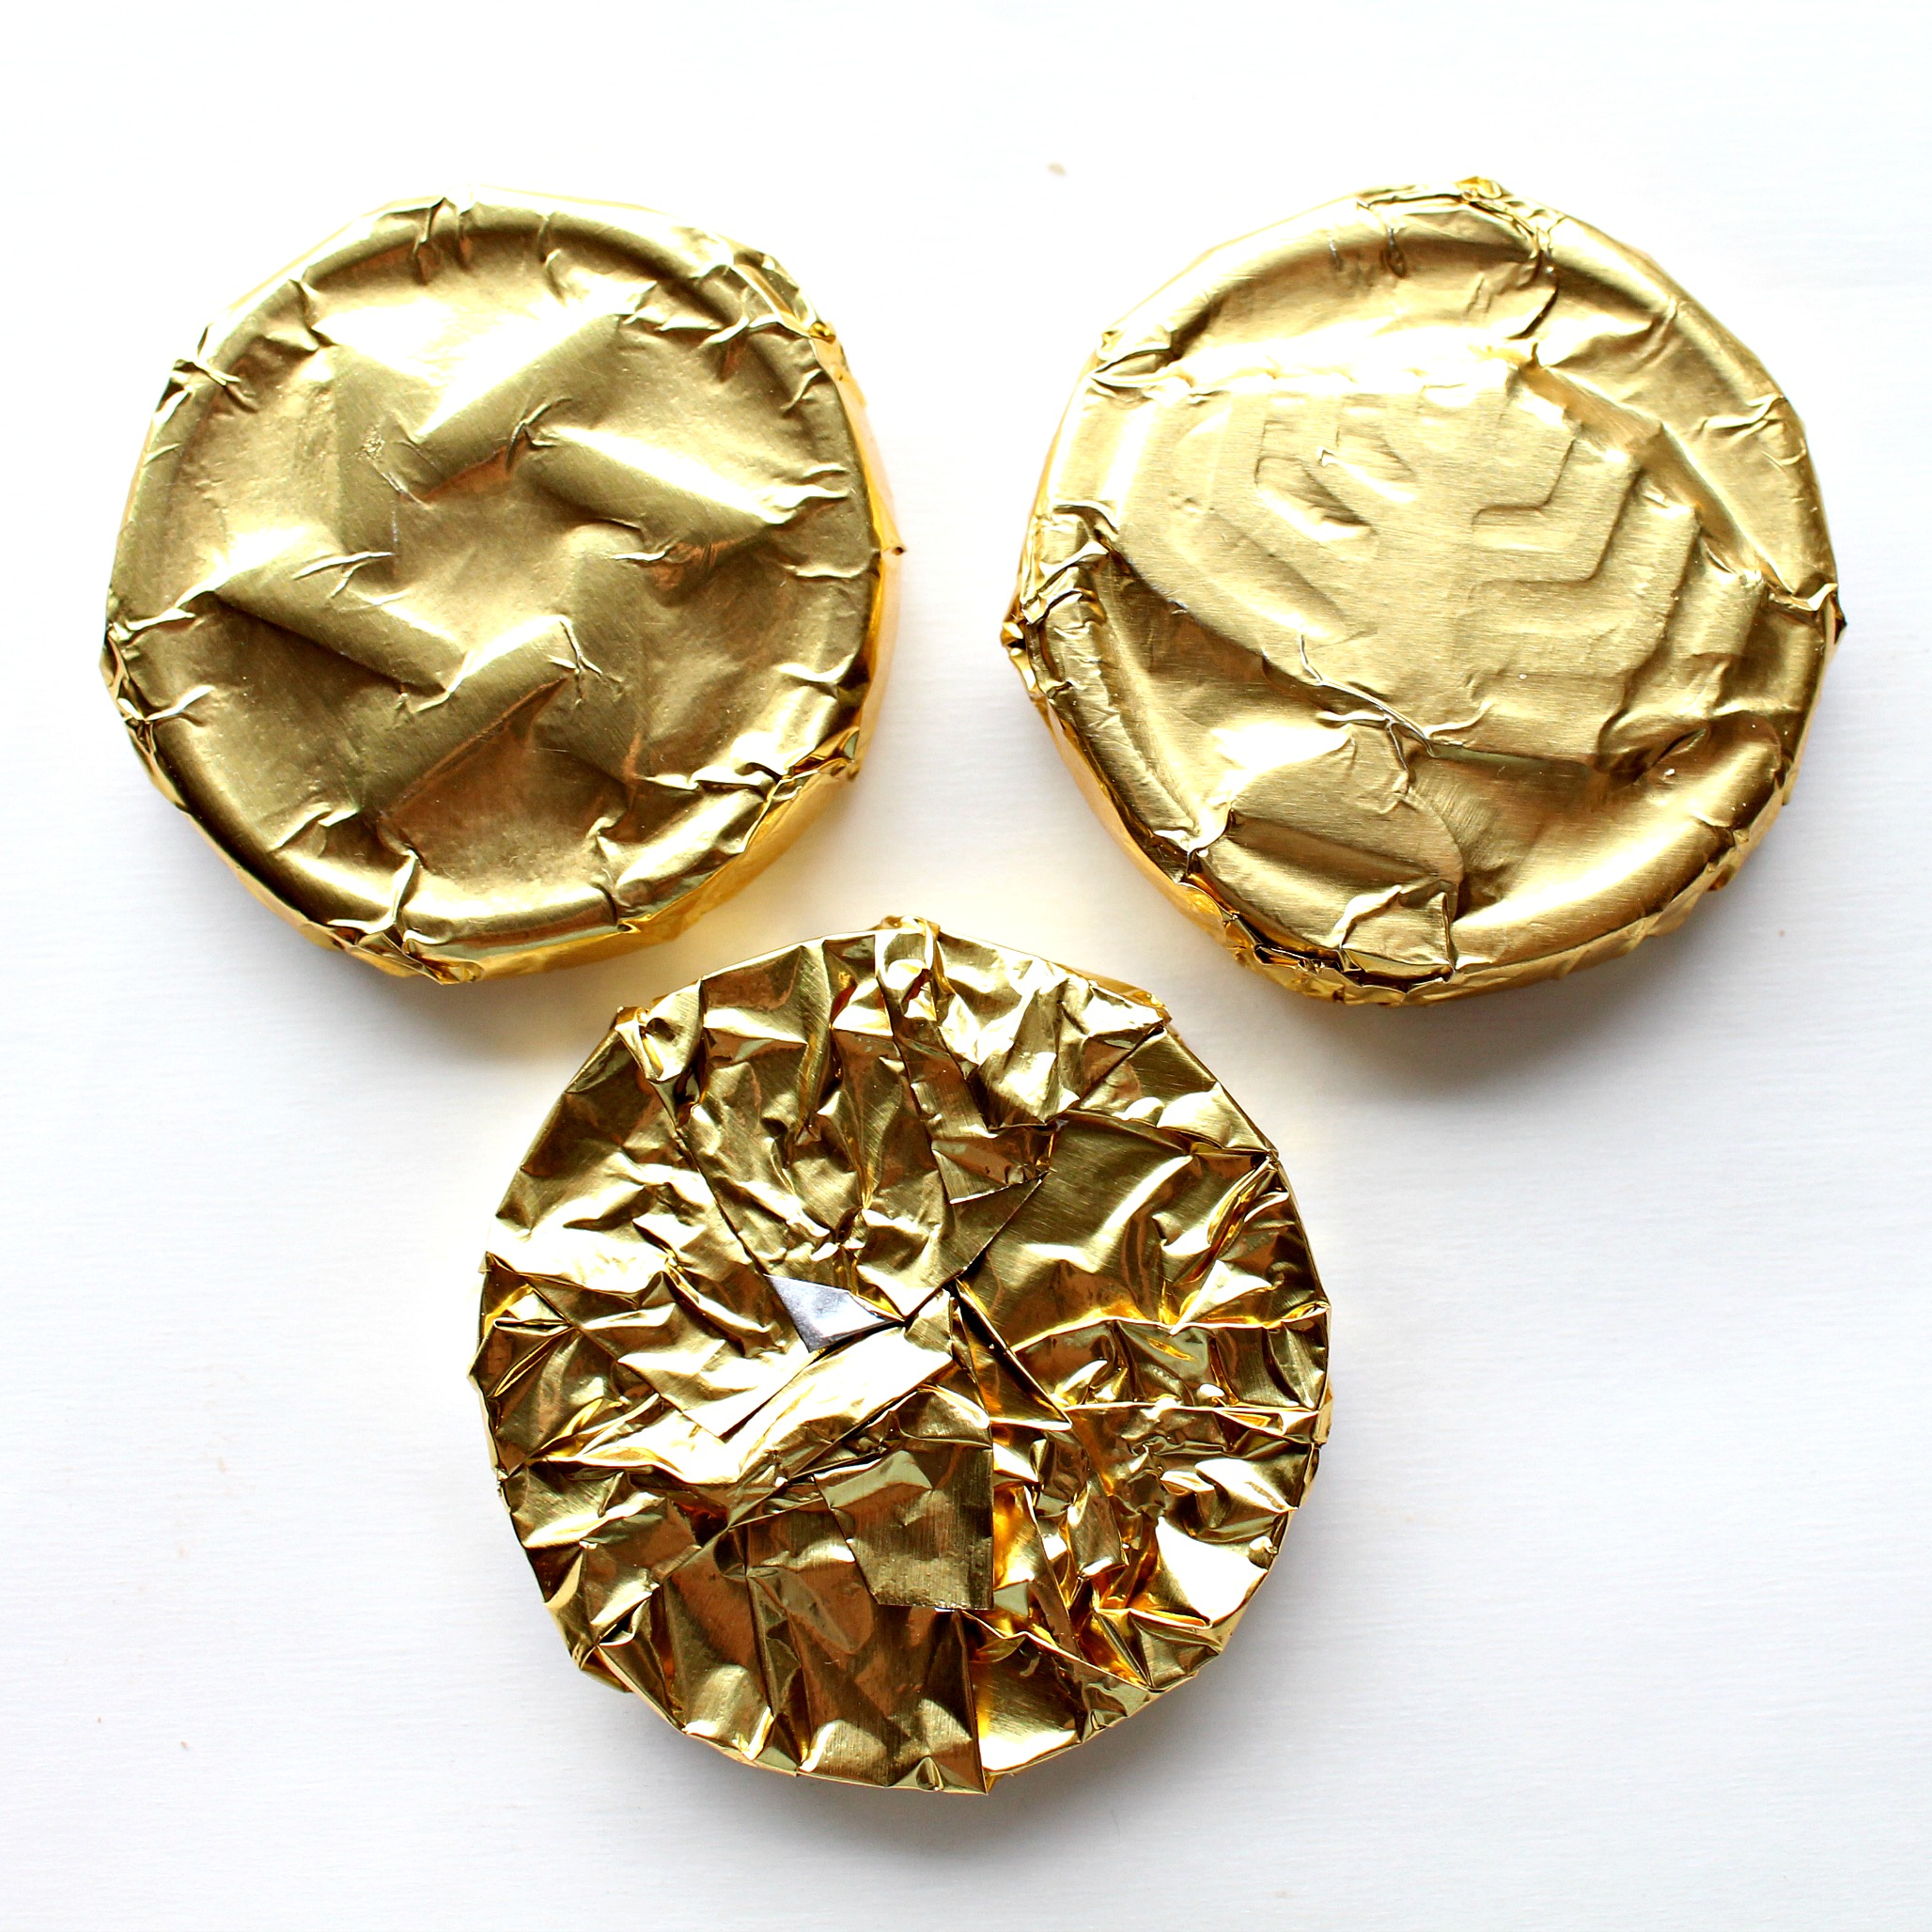 Chocolate Gold Coins - Foil Wrapped 1 lb. - True ...